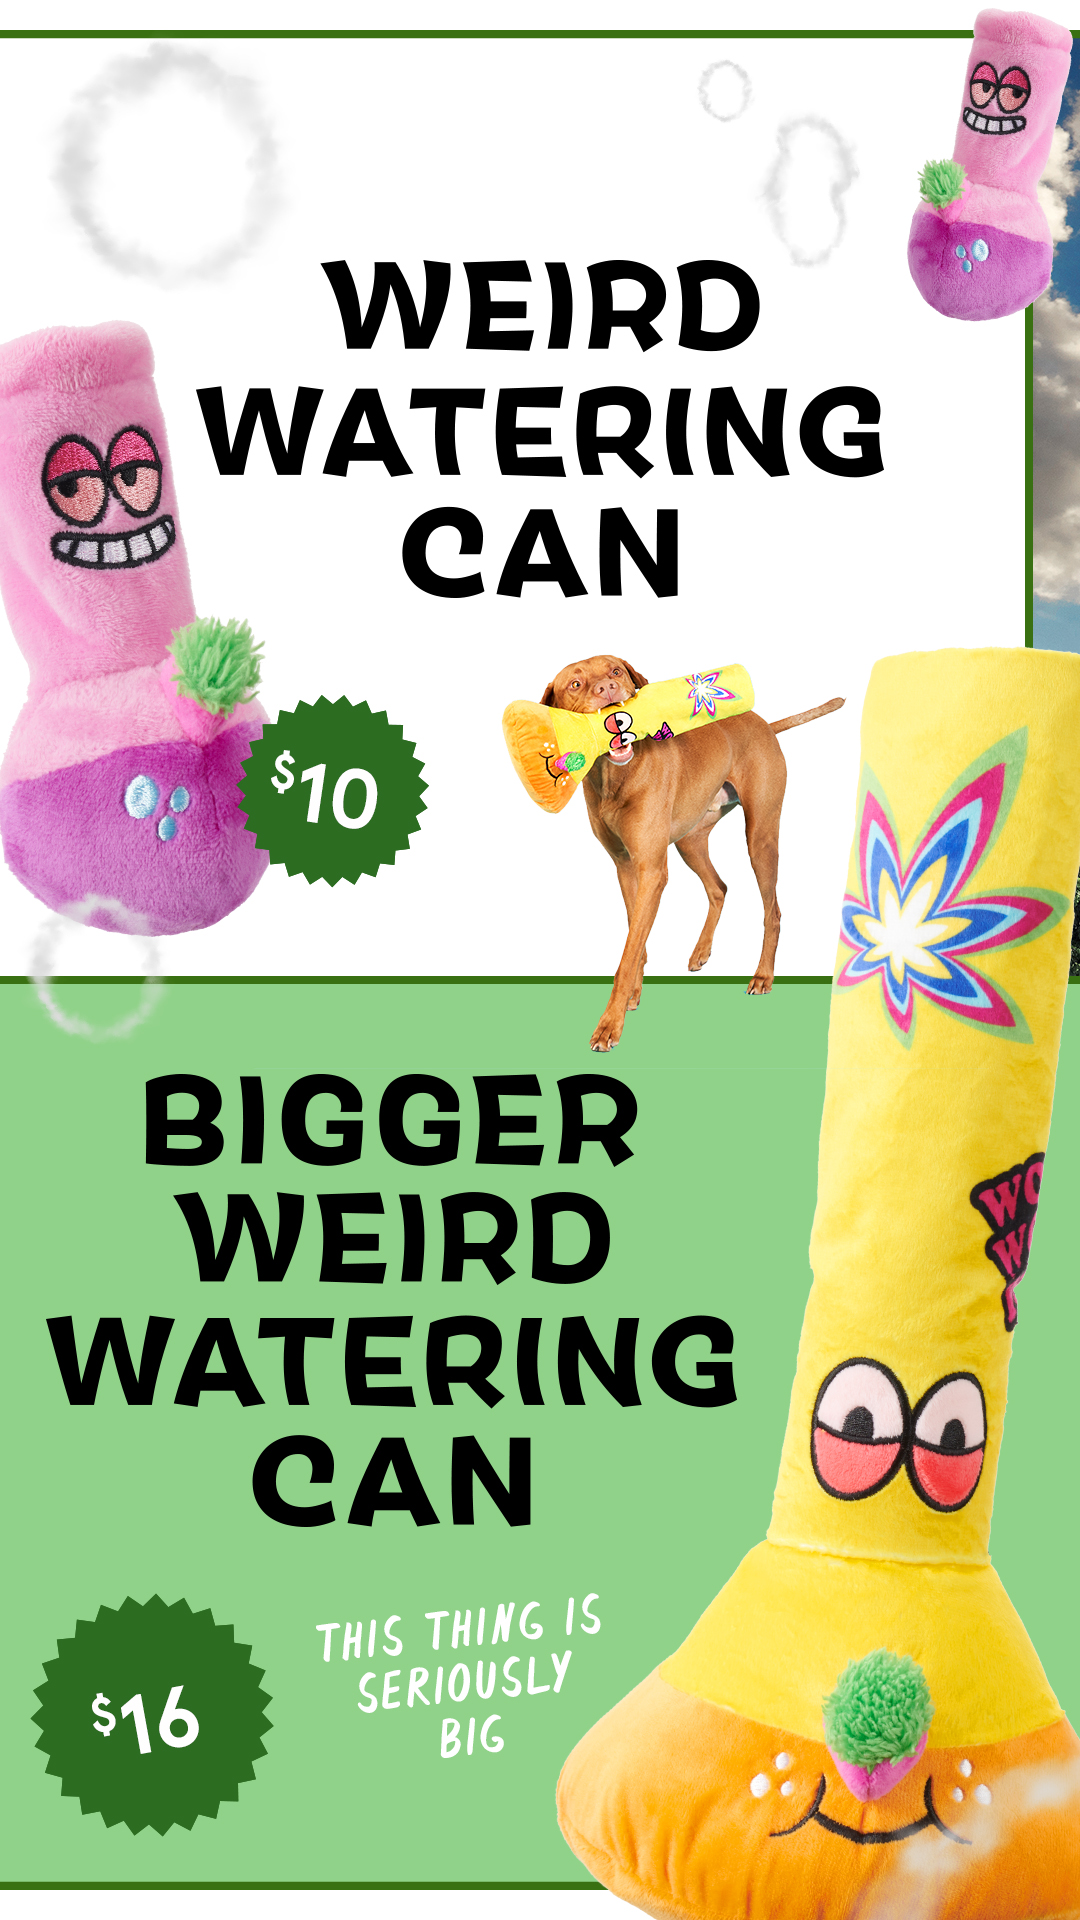 barkbox 420 weed toys watering cans